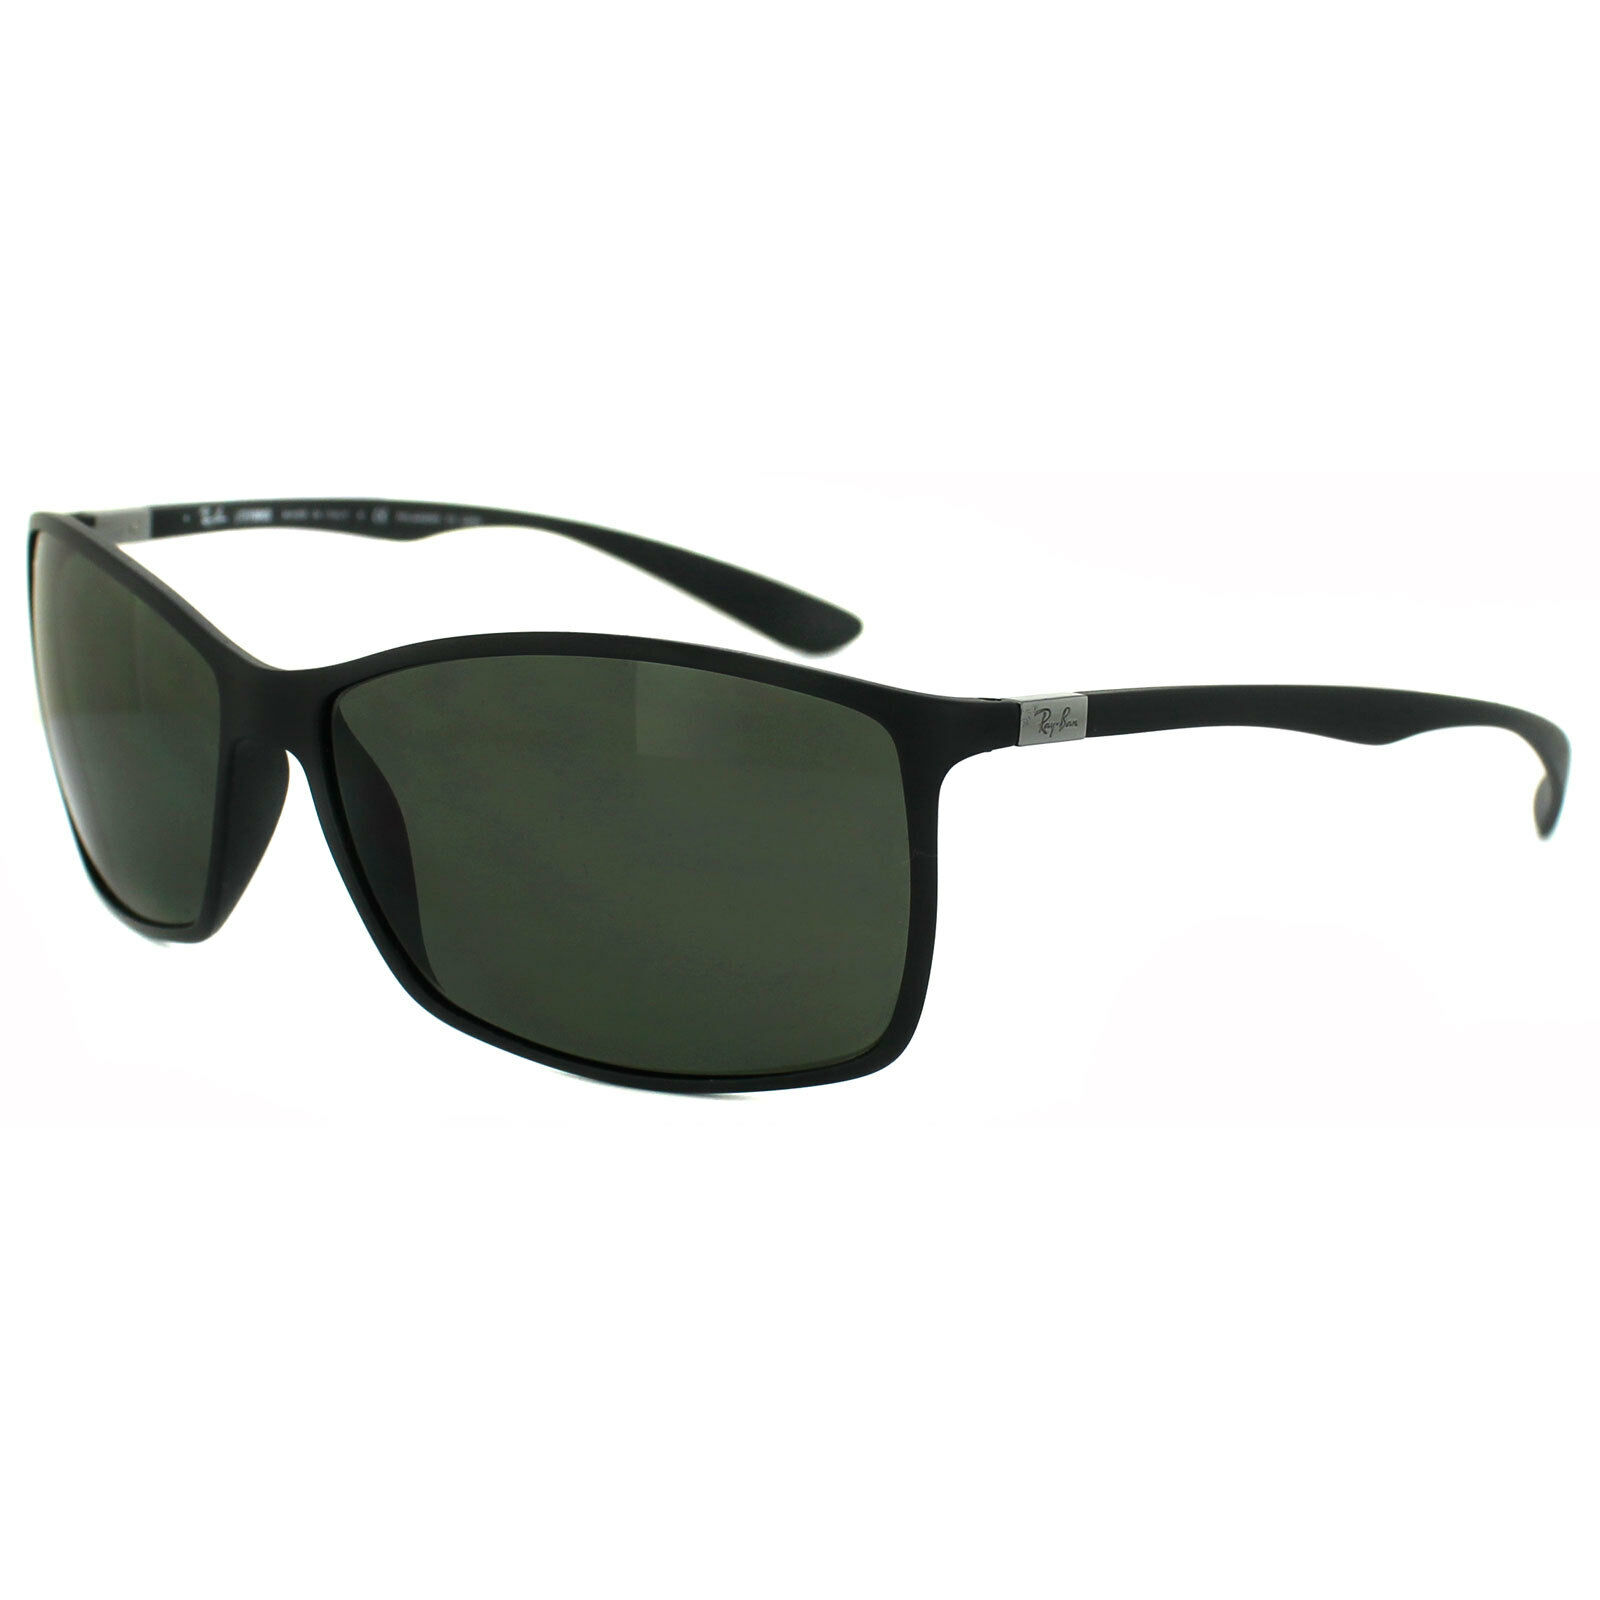 fe4dfebd93c54 Sunglasses Ray-Ban Rb4179 Liteforce 601s9a Matte Black Polarized for ...